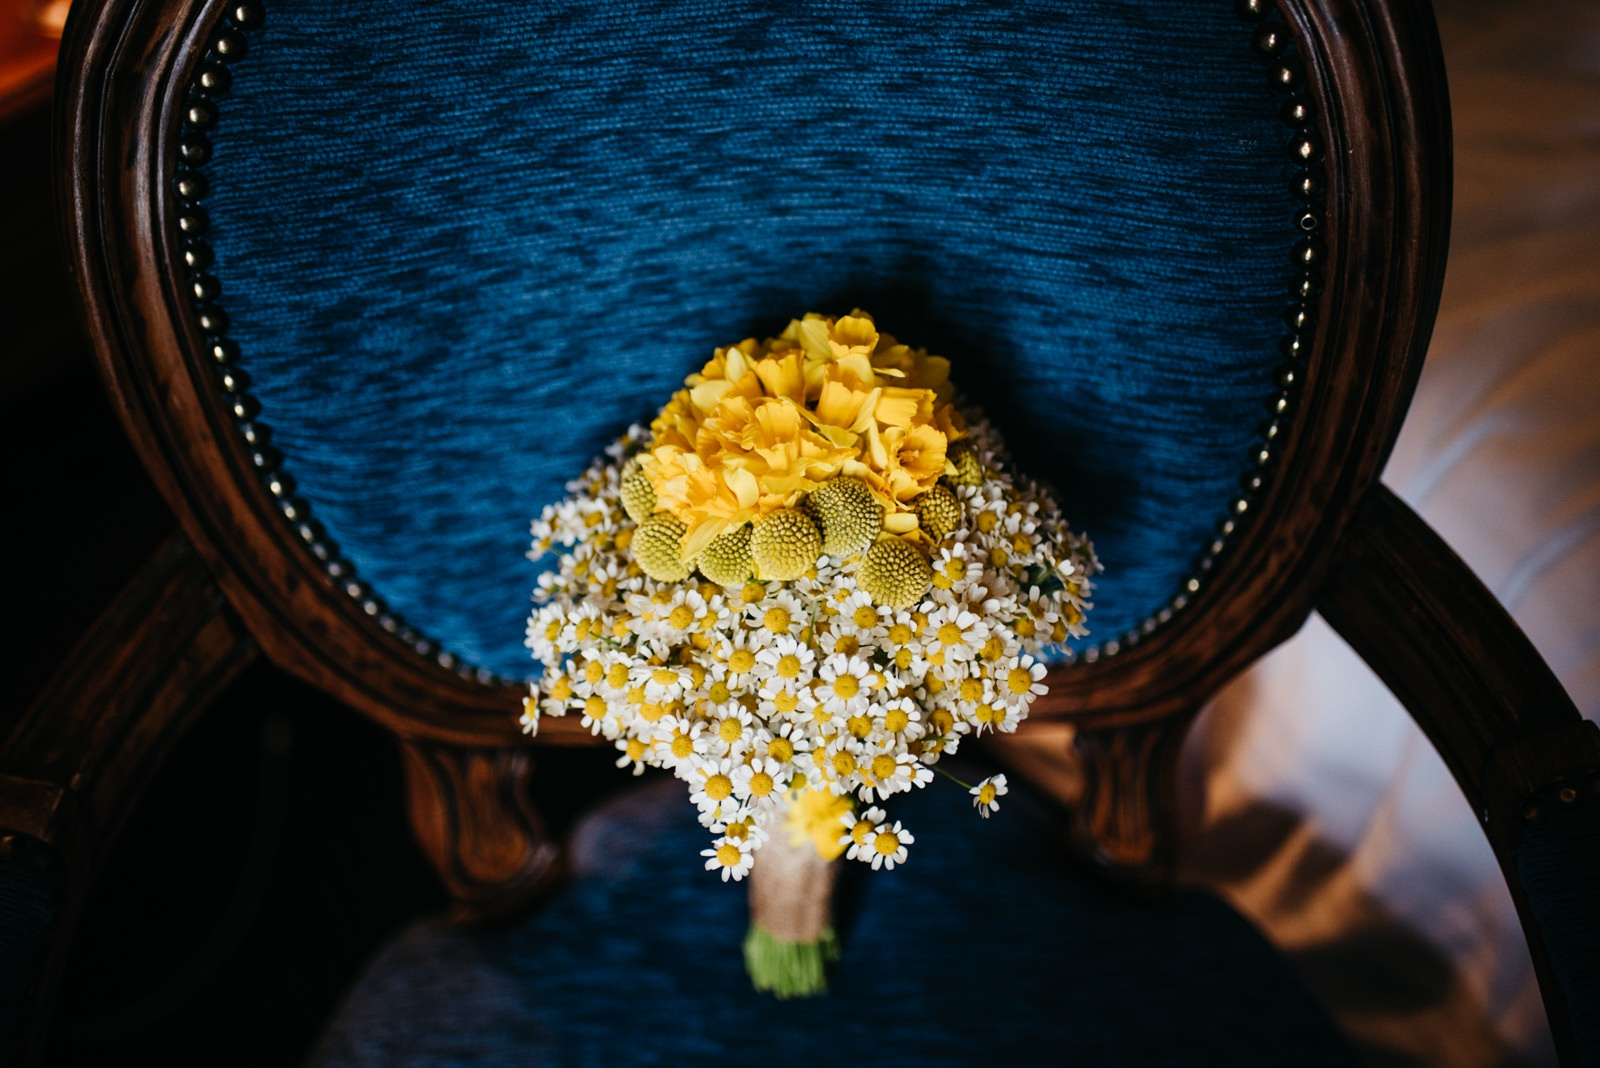 bouquet of daffodils and daisies on blue chair in New House Hotel, Cardiff